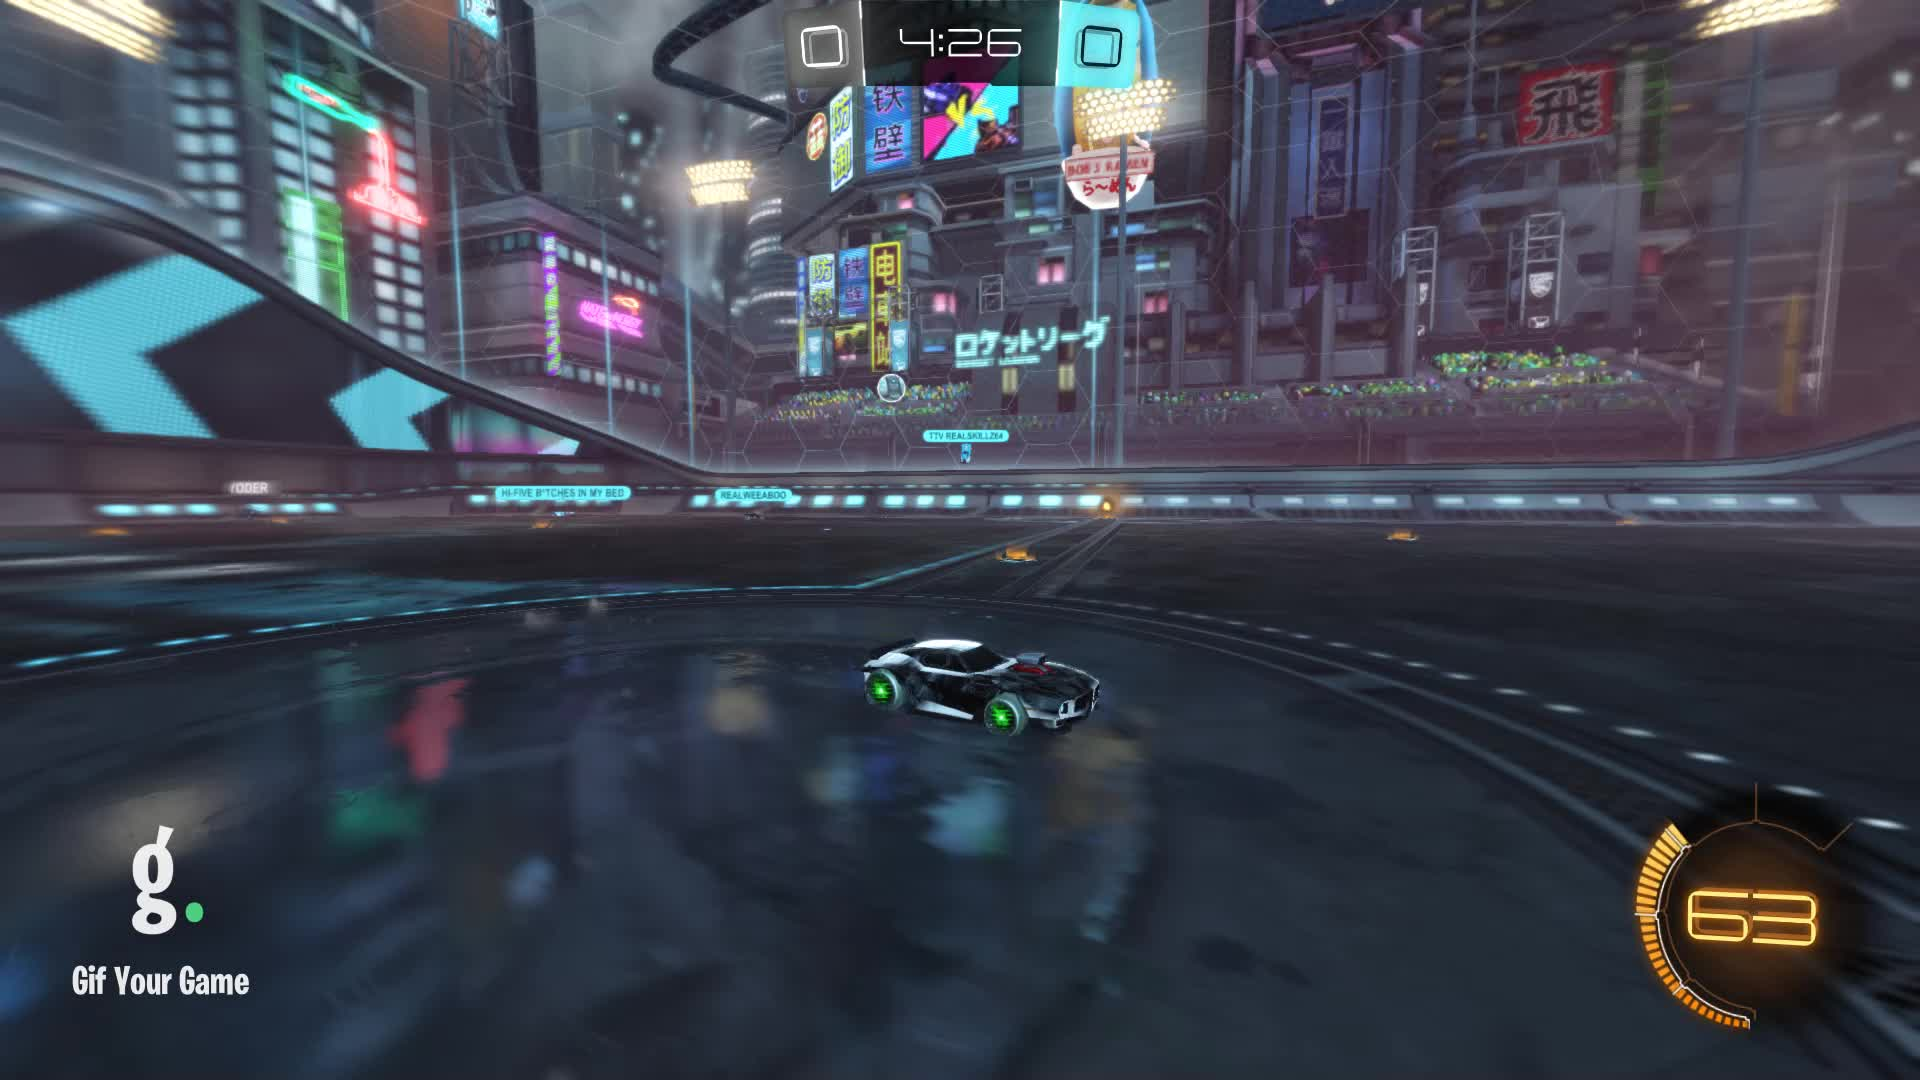 Duck Dodgers, Gif Your Game, GifYourGame, Rocket League, RocketLeague, Save, Save 1: Duck Dodgers GIFs